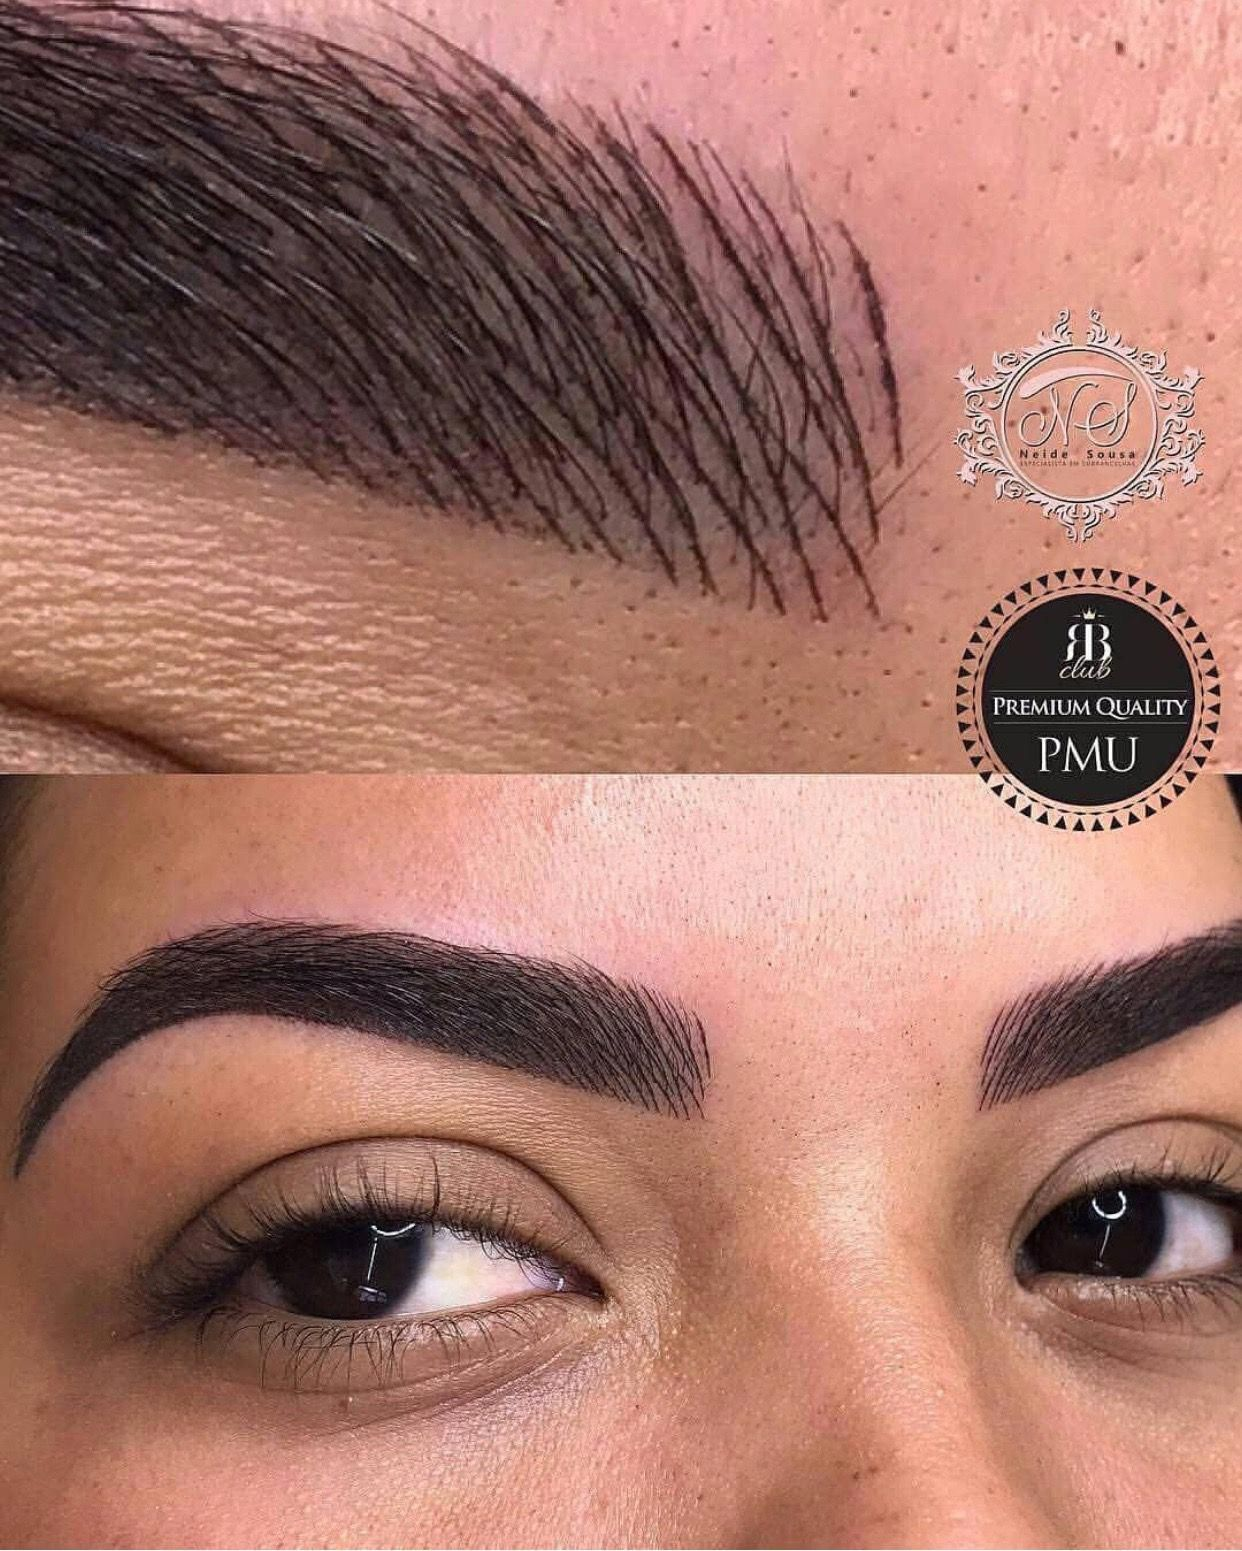 Pin by Daisy Dimpiffette on Makeup I Like Microblading